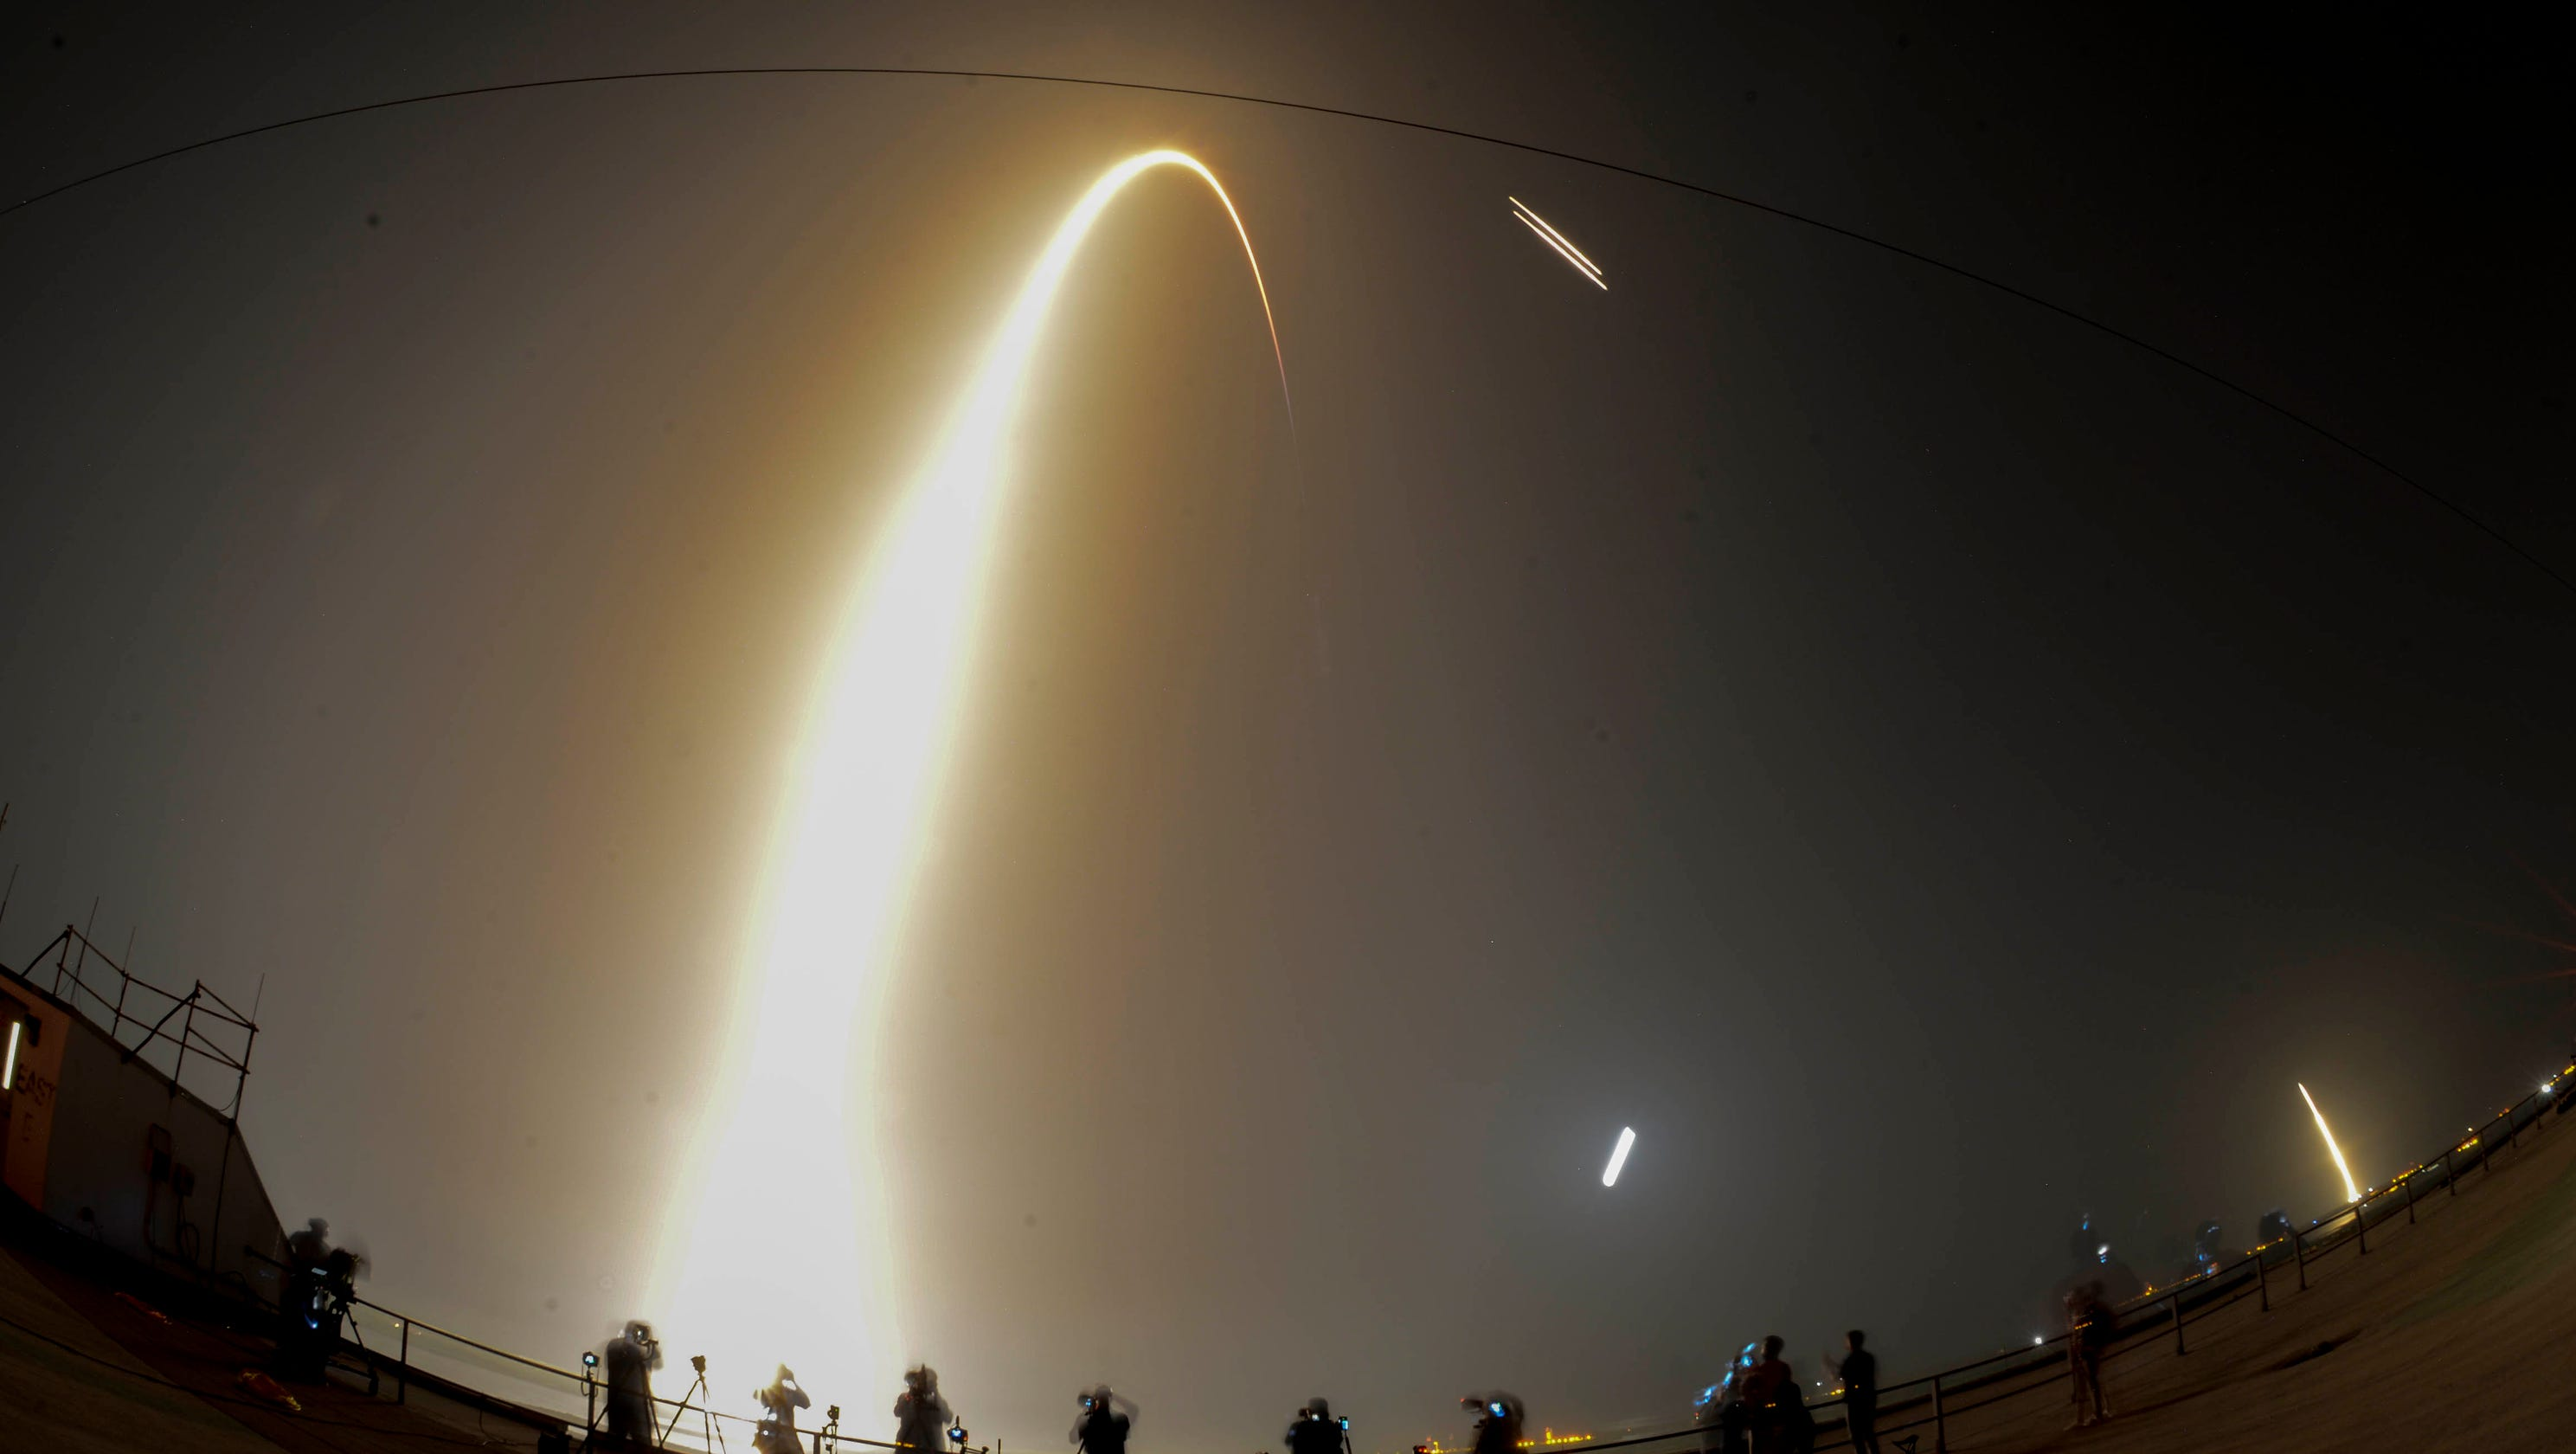 Pictures of SpaceX Falcon Heavy rocket launch at Kennedy Space Center